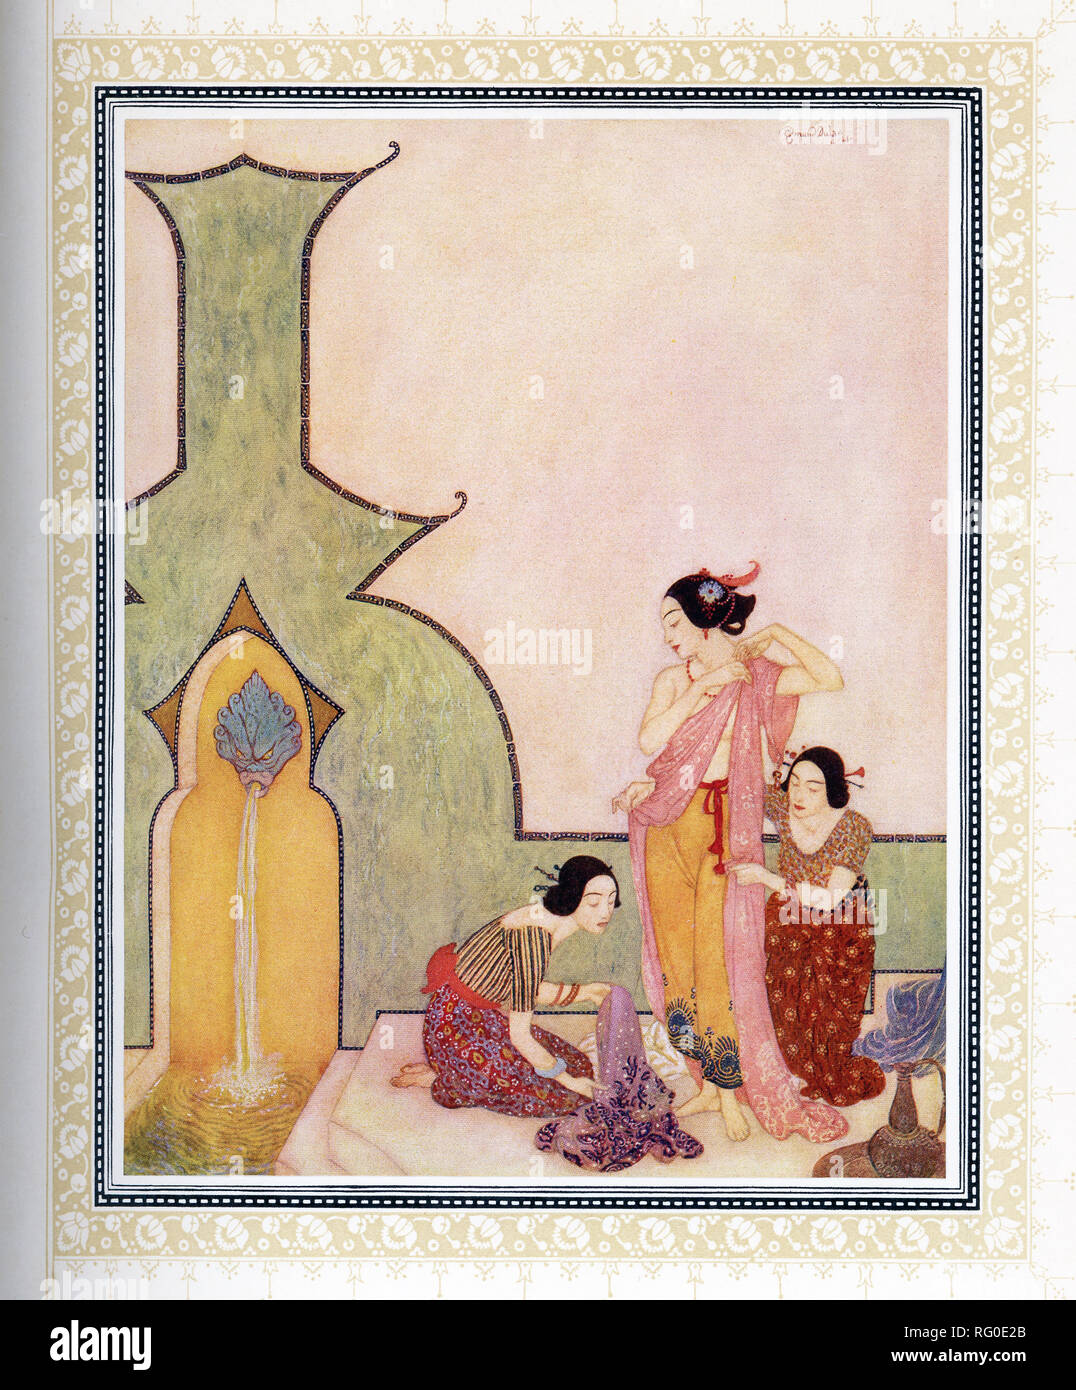 This illustration is taken from the book 'Sinbad the Sailor' that was published around 1914.  It shows Lady Bedr-el-Budr at her bath. The illustrator was Edmund Dulac and the story is from the Arabian Nights. Aladdin fell in love with Lady Bedr-el-Buhr when he saw her. Here the Lady is shown at her bath. - Stock Image